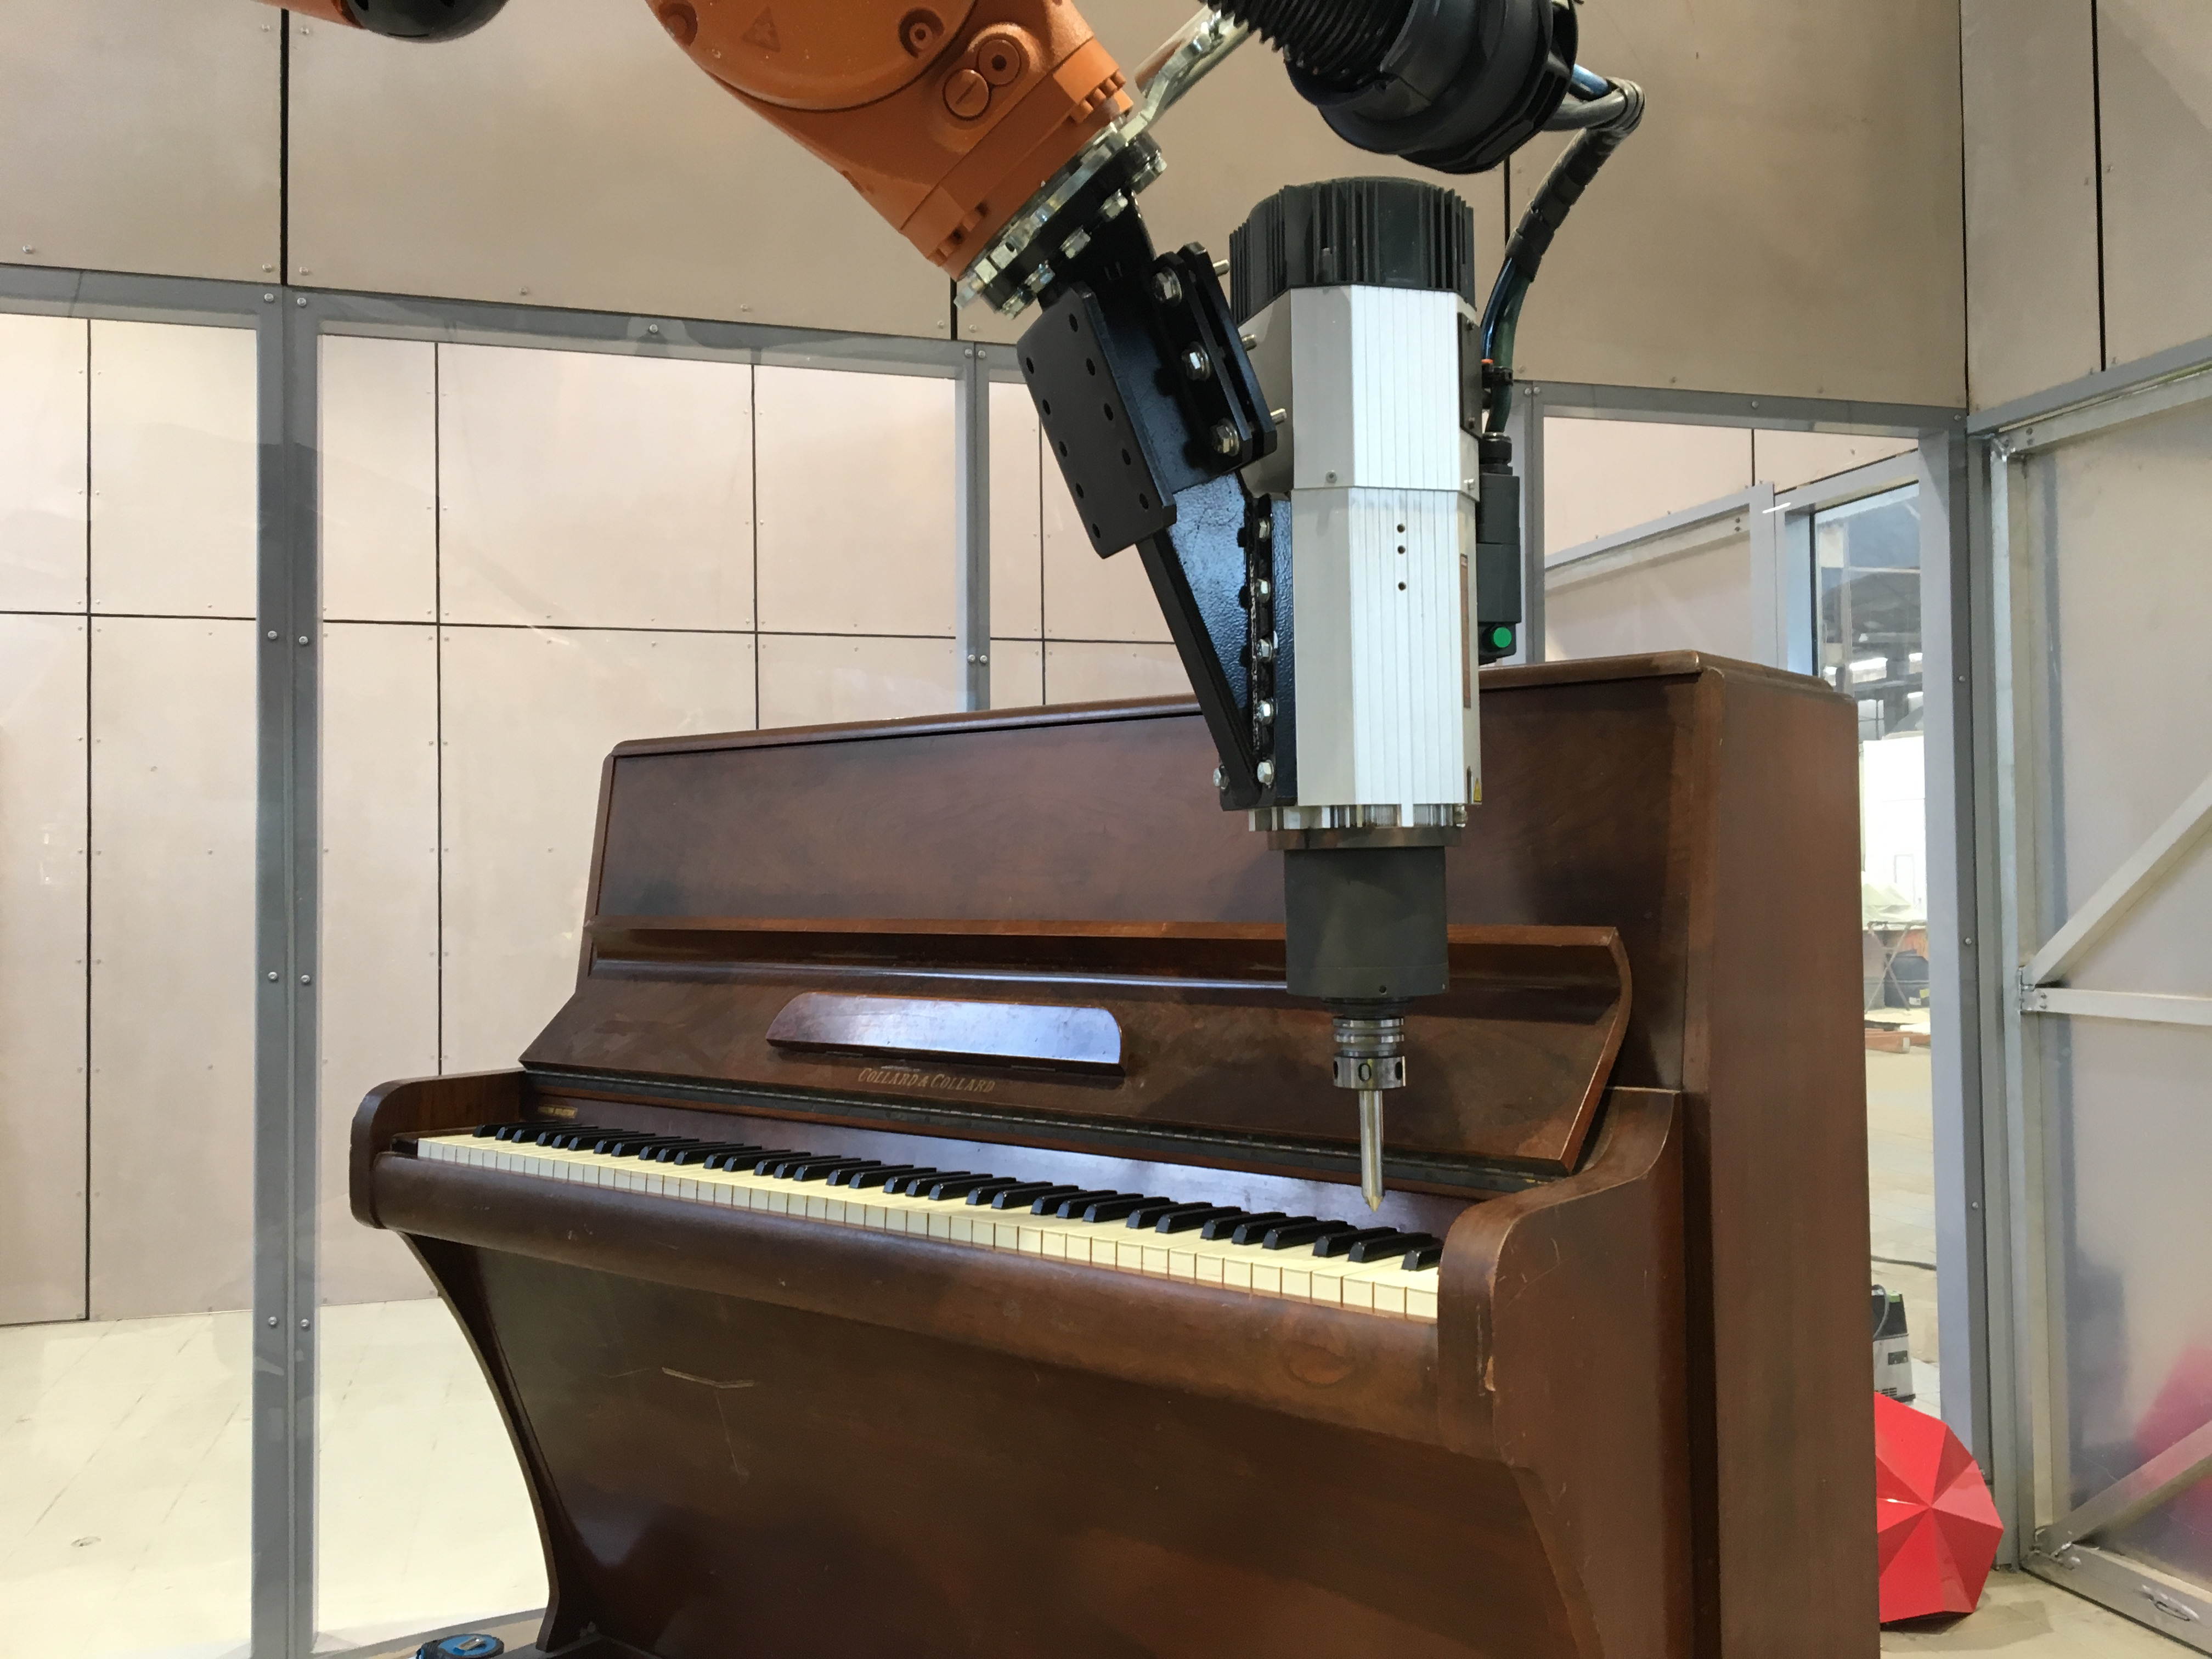 Marvin the performing robotic arm at Clocked Out | Design